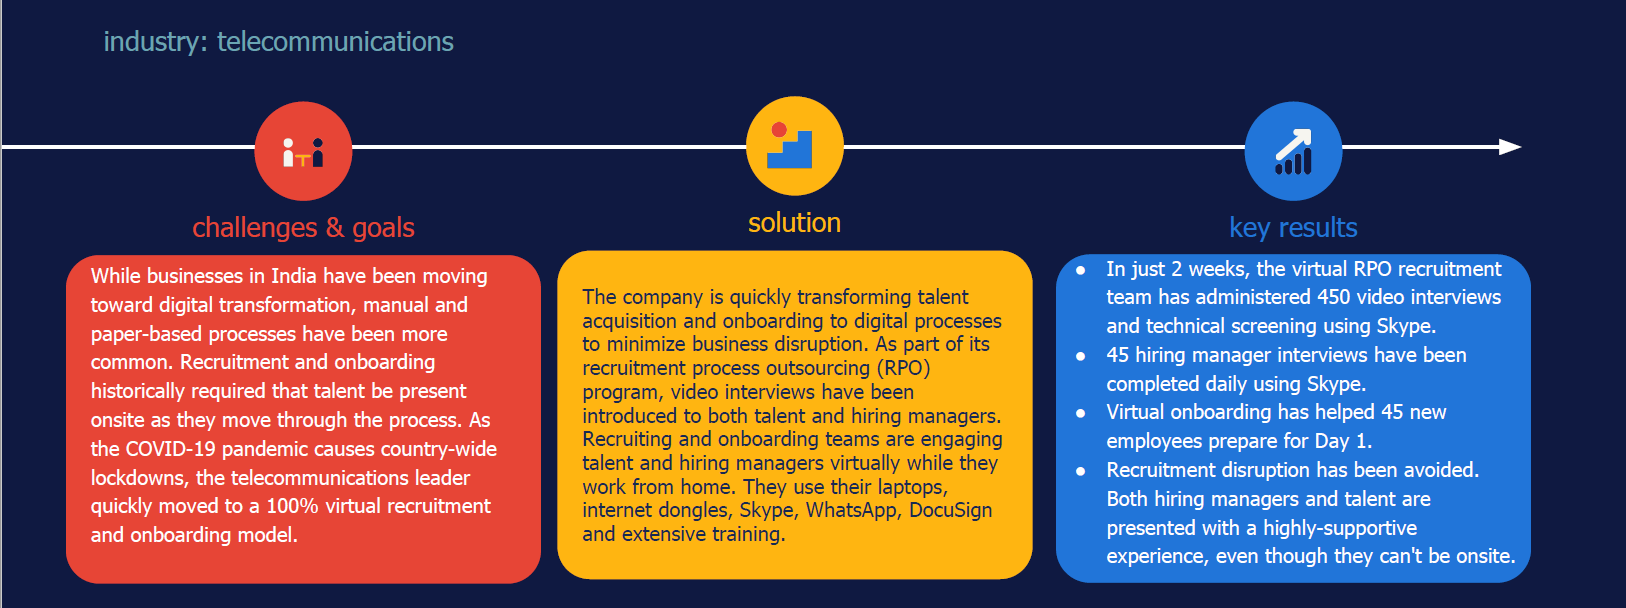 Randstad Sourceright case study virtual recruiting onboarding COVID-19